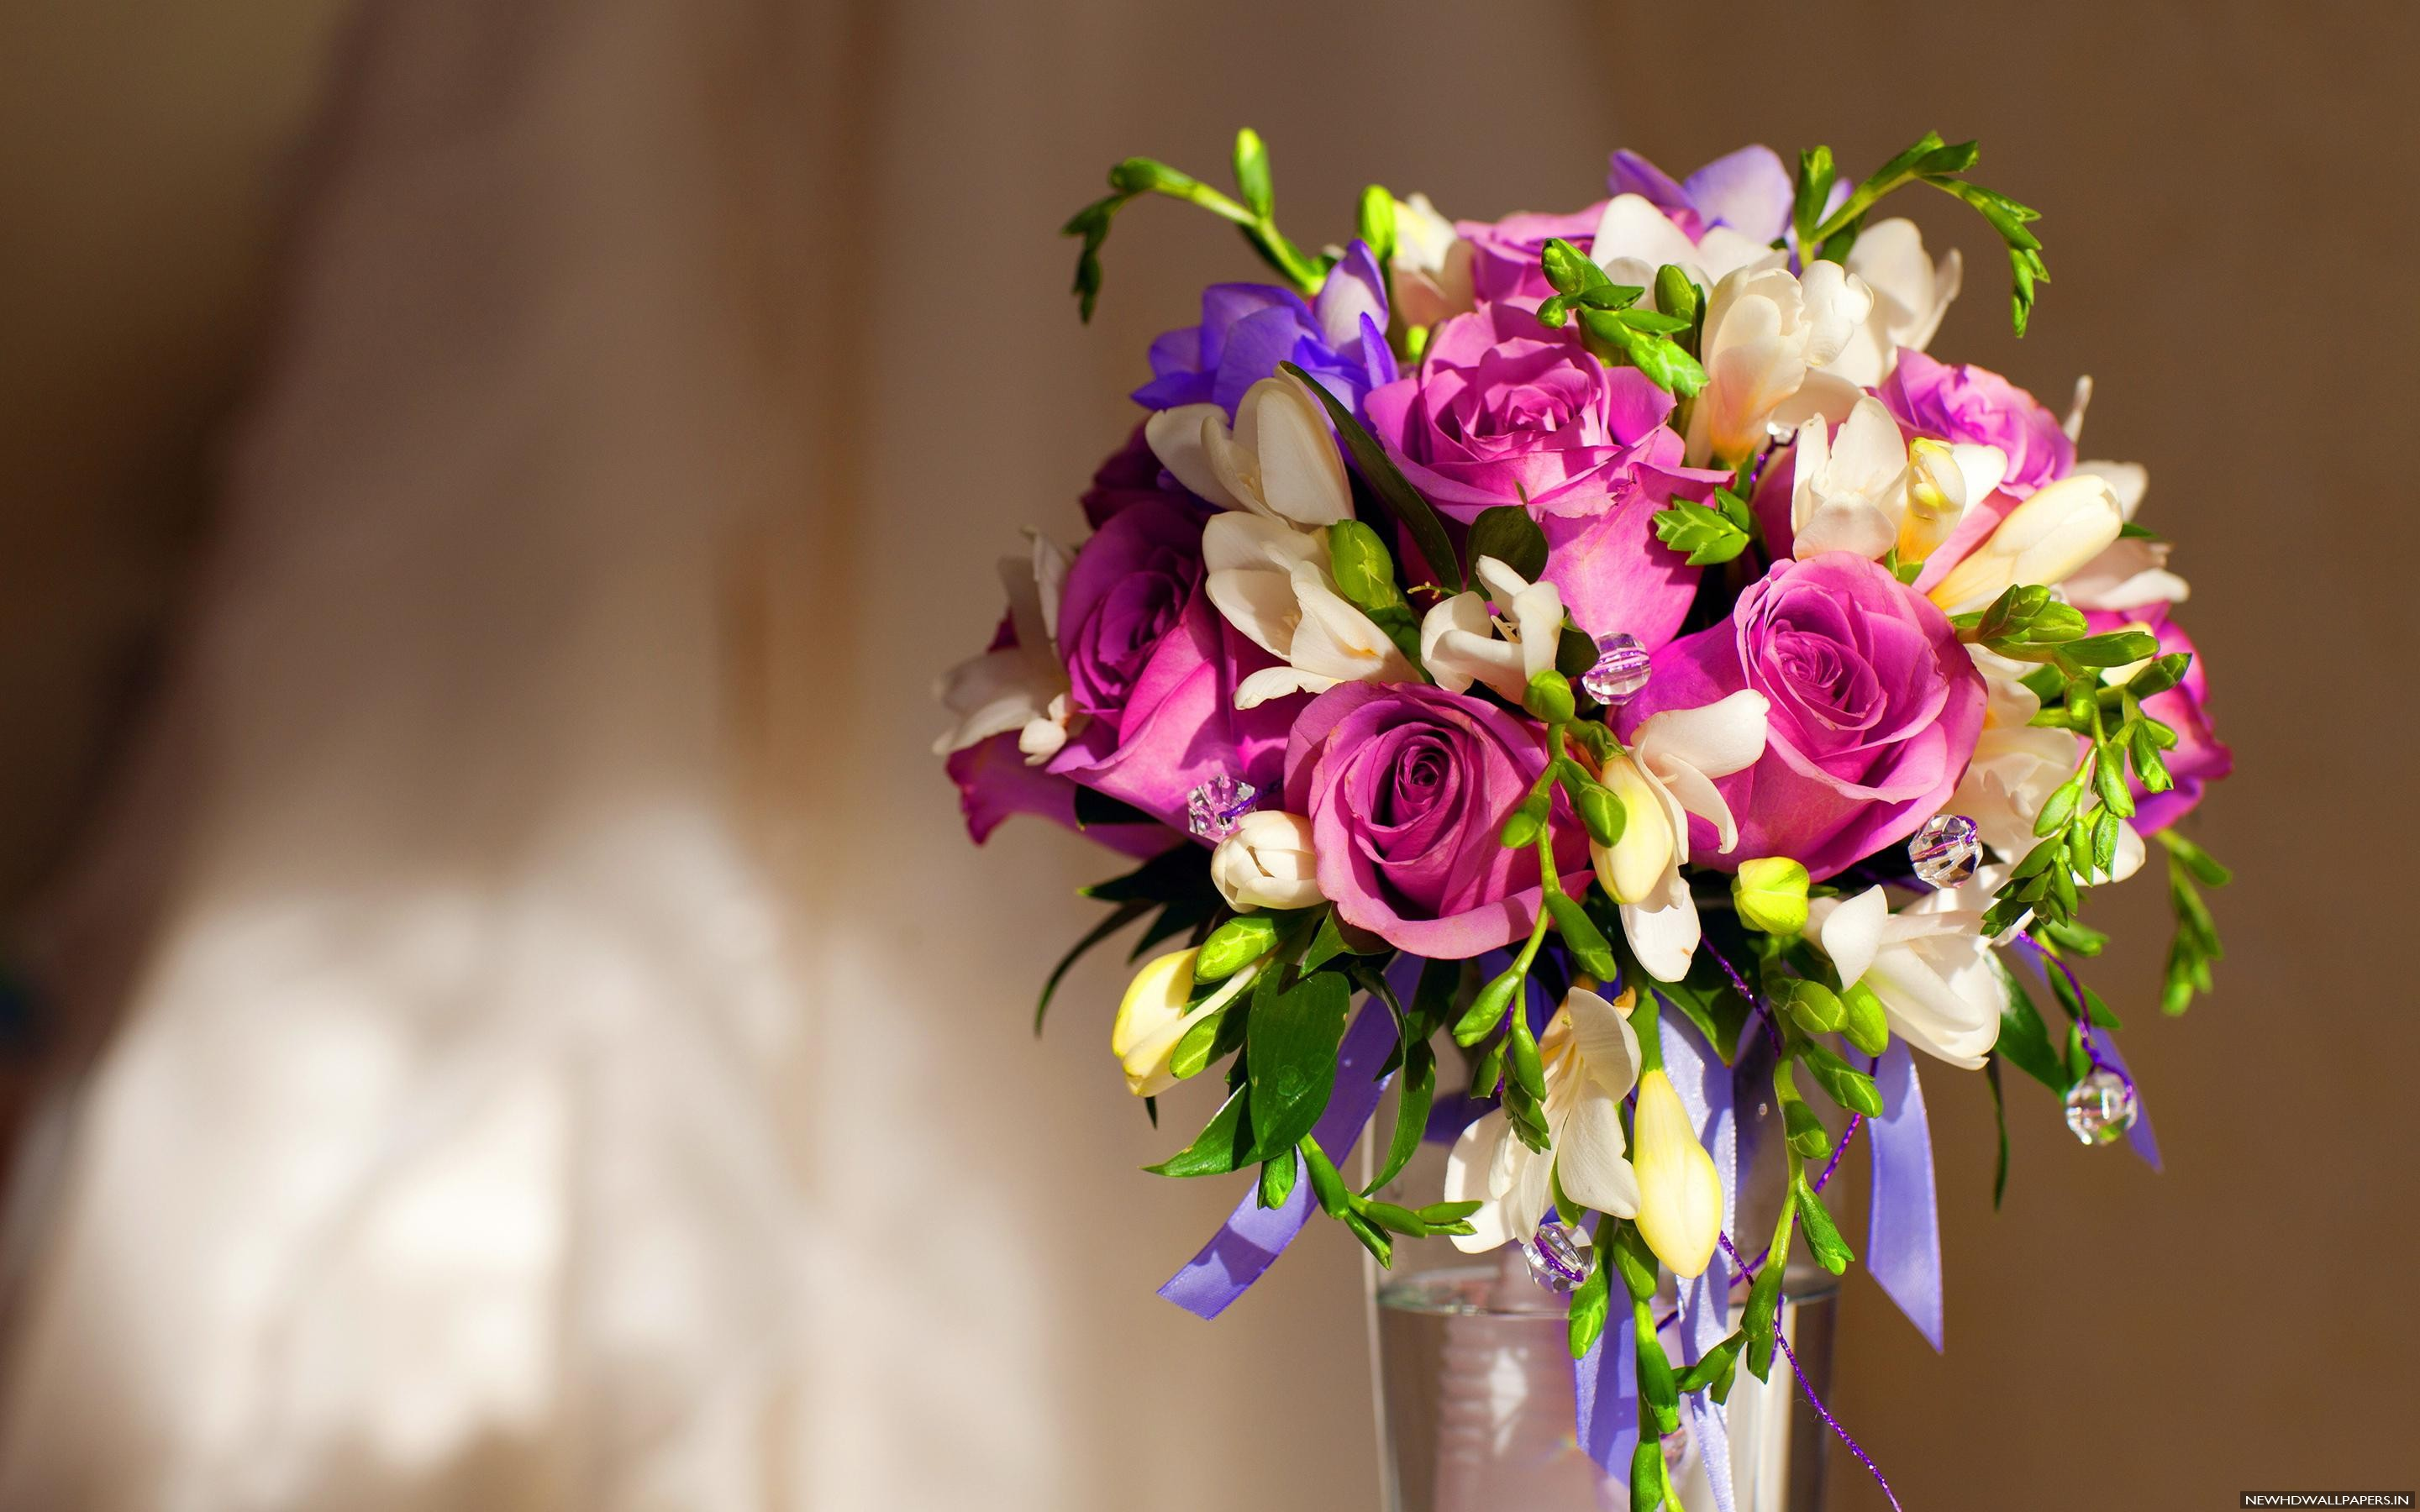 Top flowers and combo gifts to send your family and love one